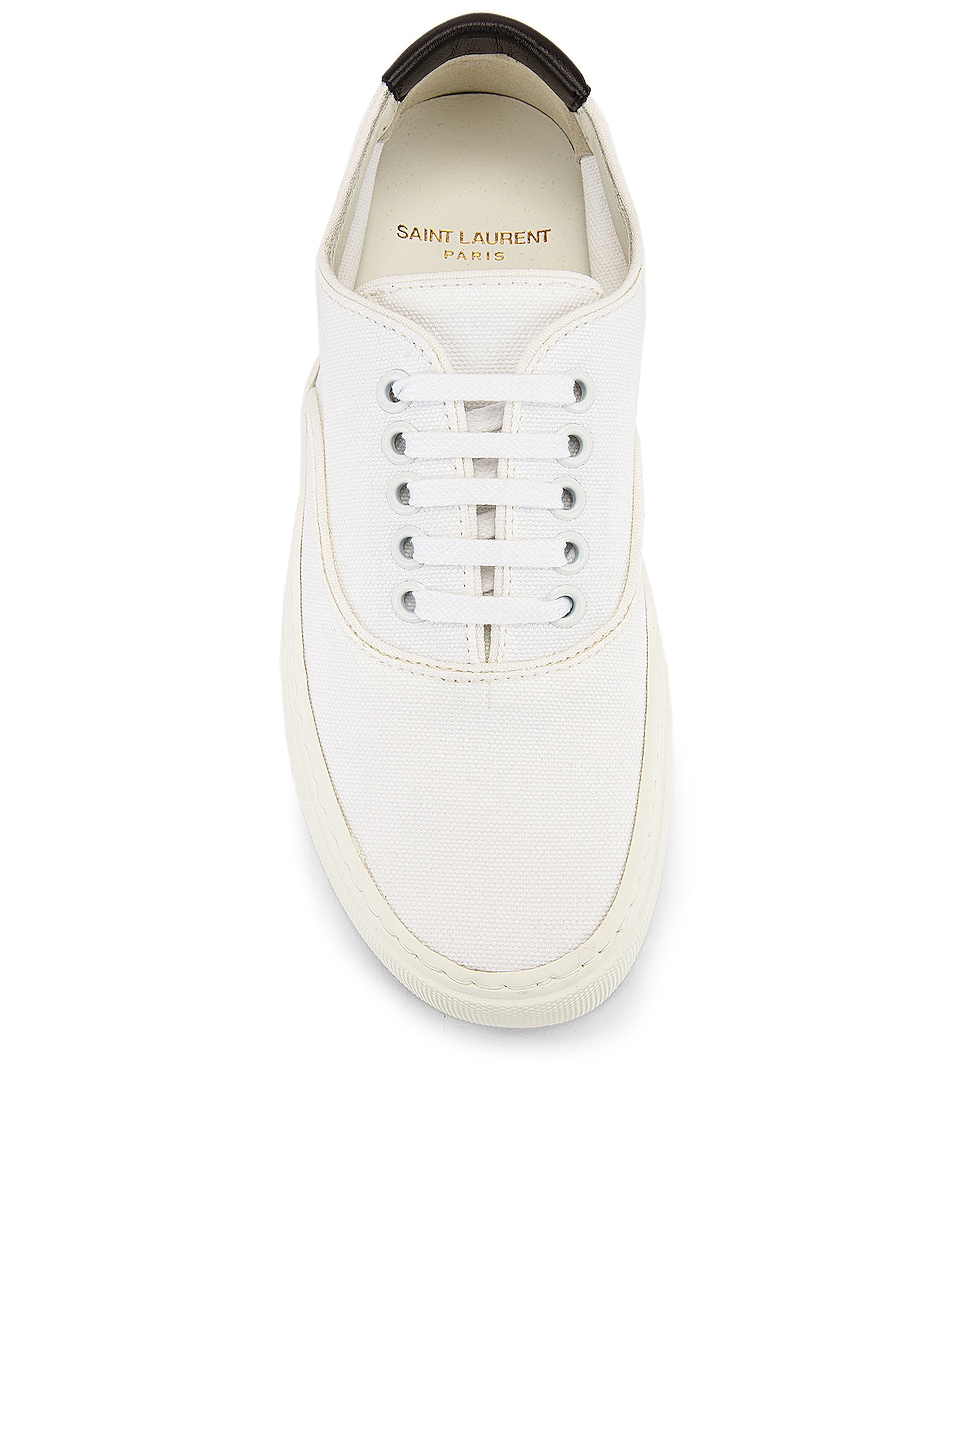 Image 4 of Saint Laurent Venice Low Top Sneakers in White & Manto Naturale